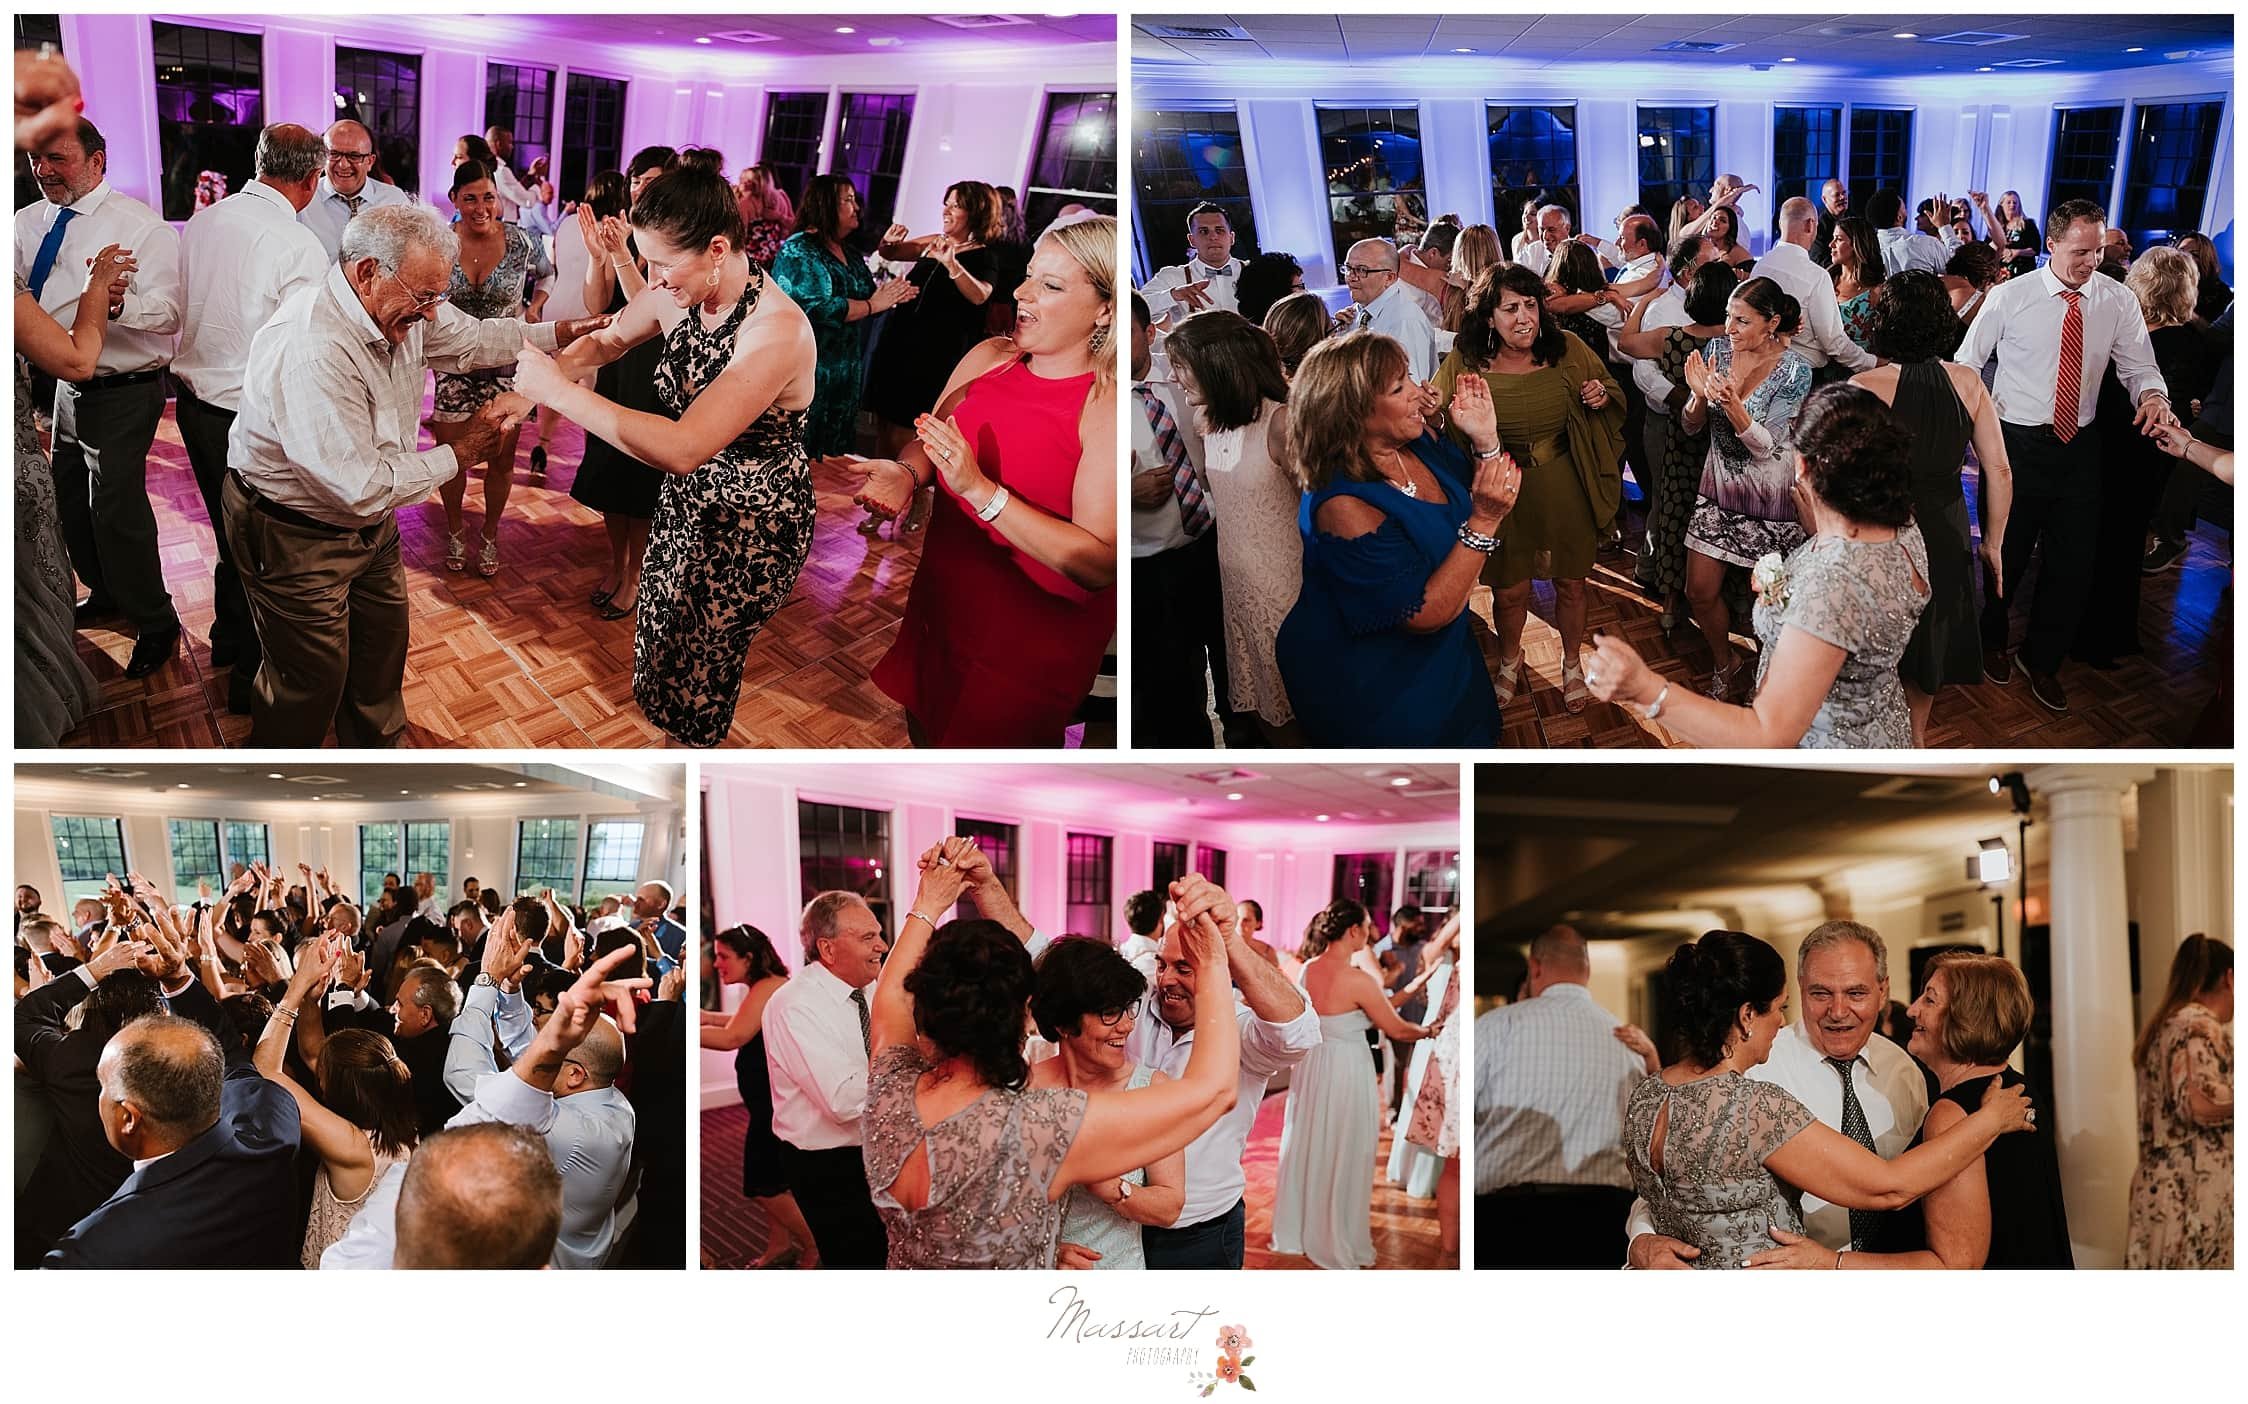 Wedding dances by guests celebrating new bride and groom photographed by CT wedding photographers Massart Photography.